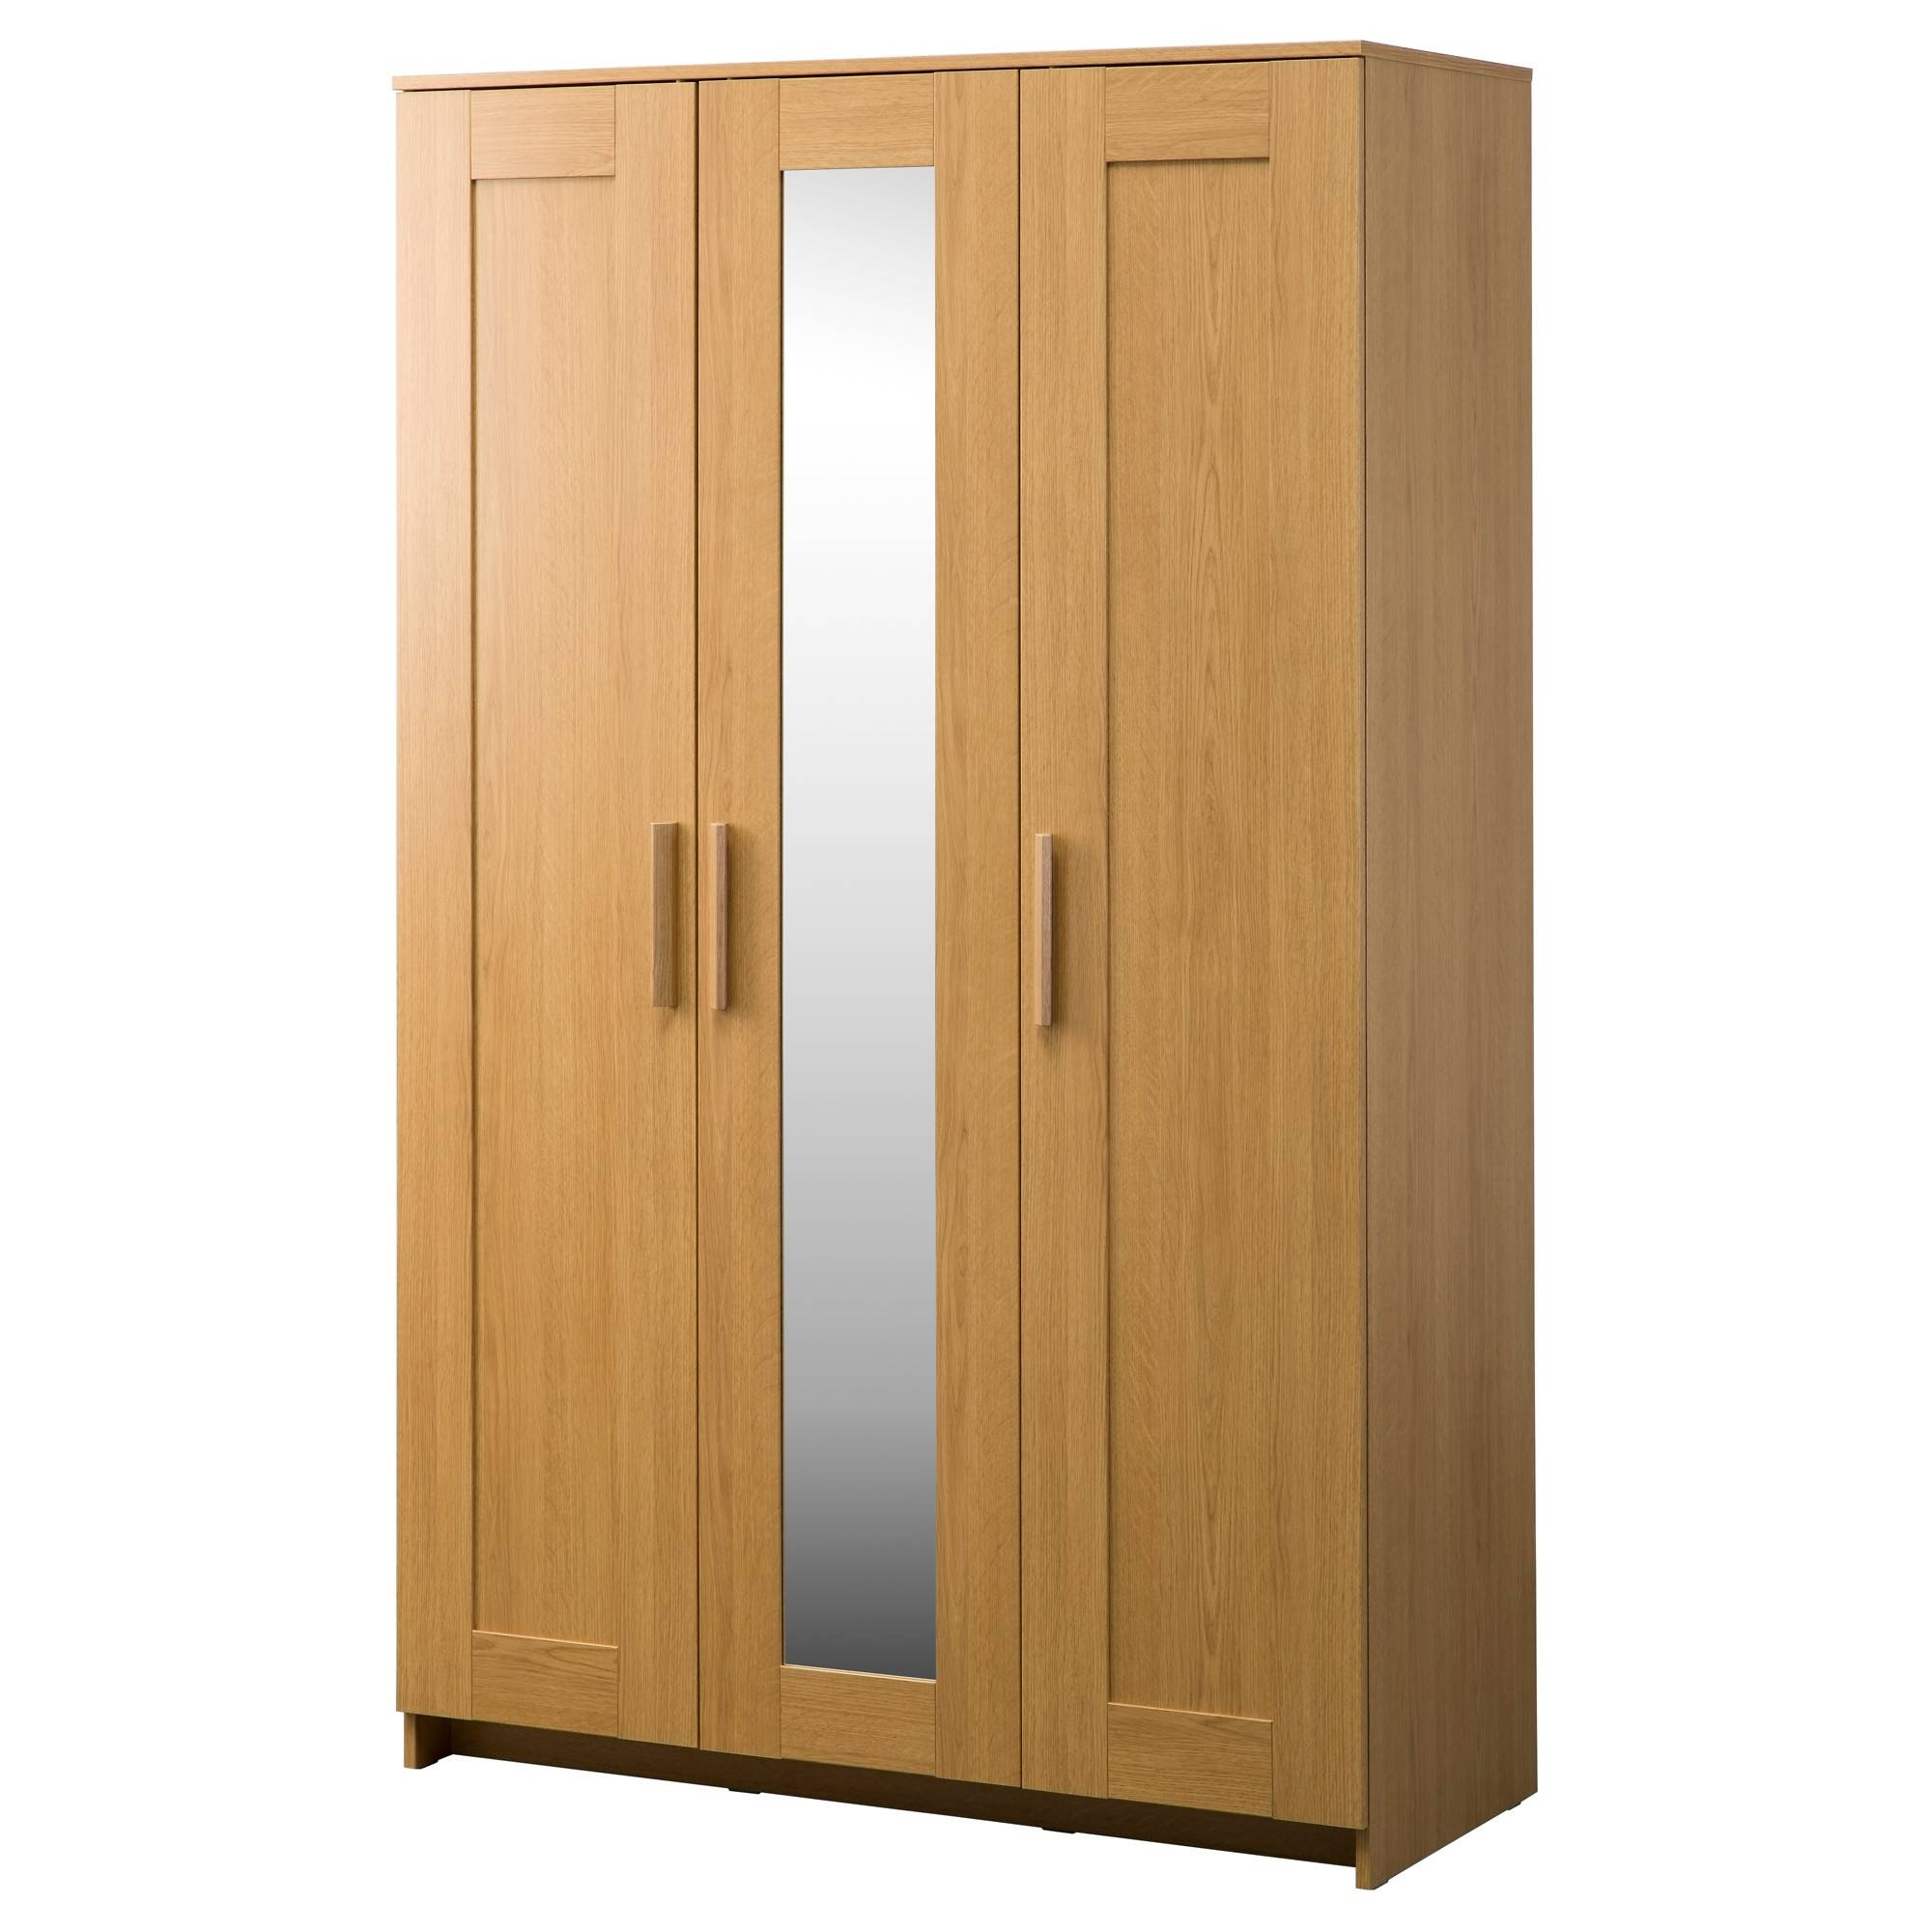 Wardrobes | Ikea Throughout Double Hanging Rail Wardrobes (View 8 of 30)